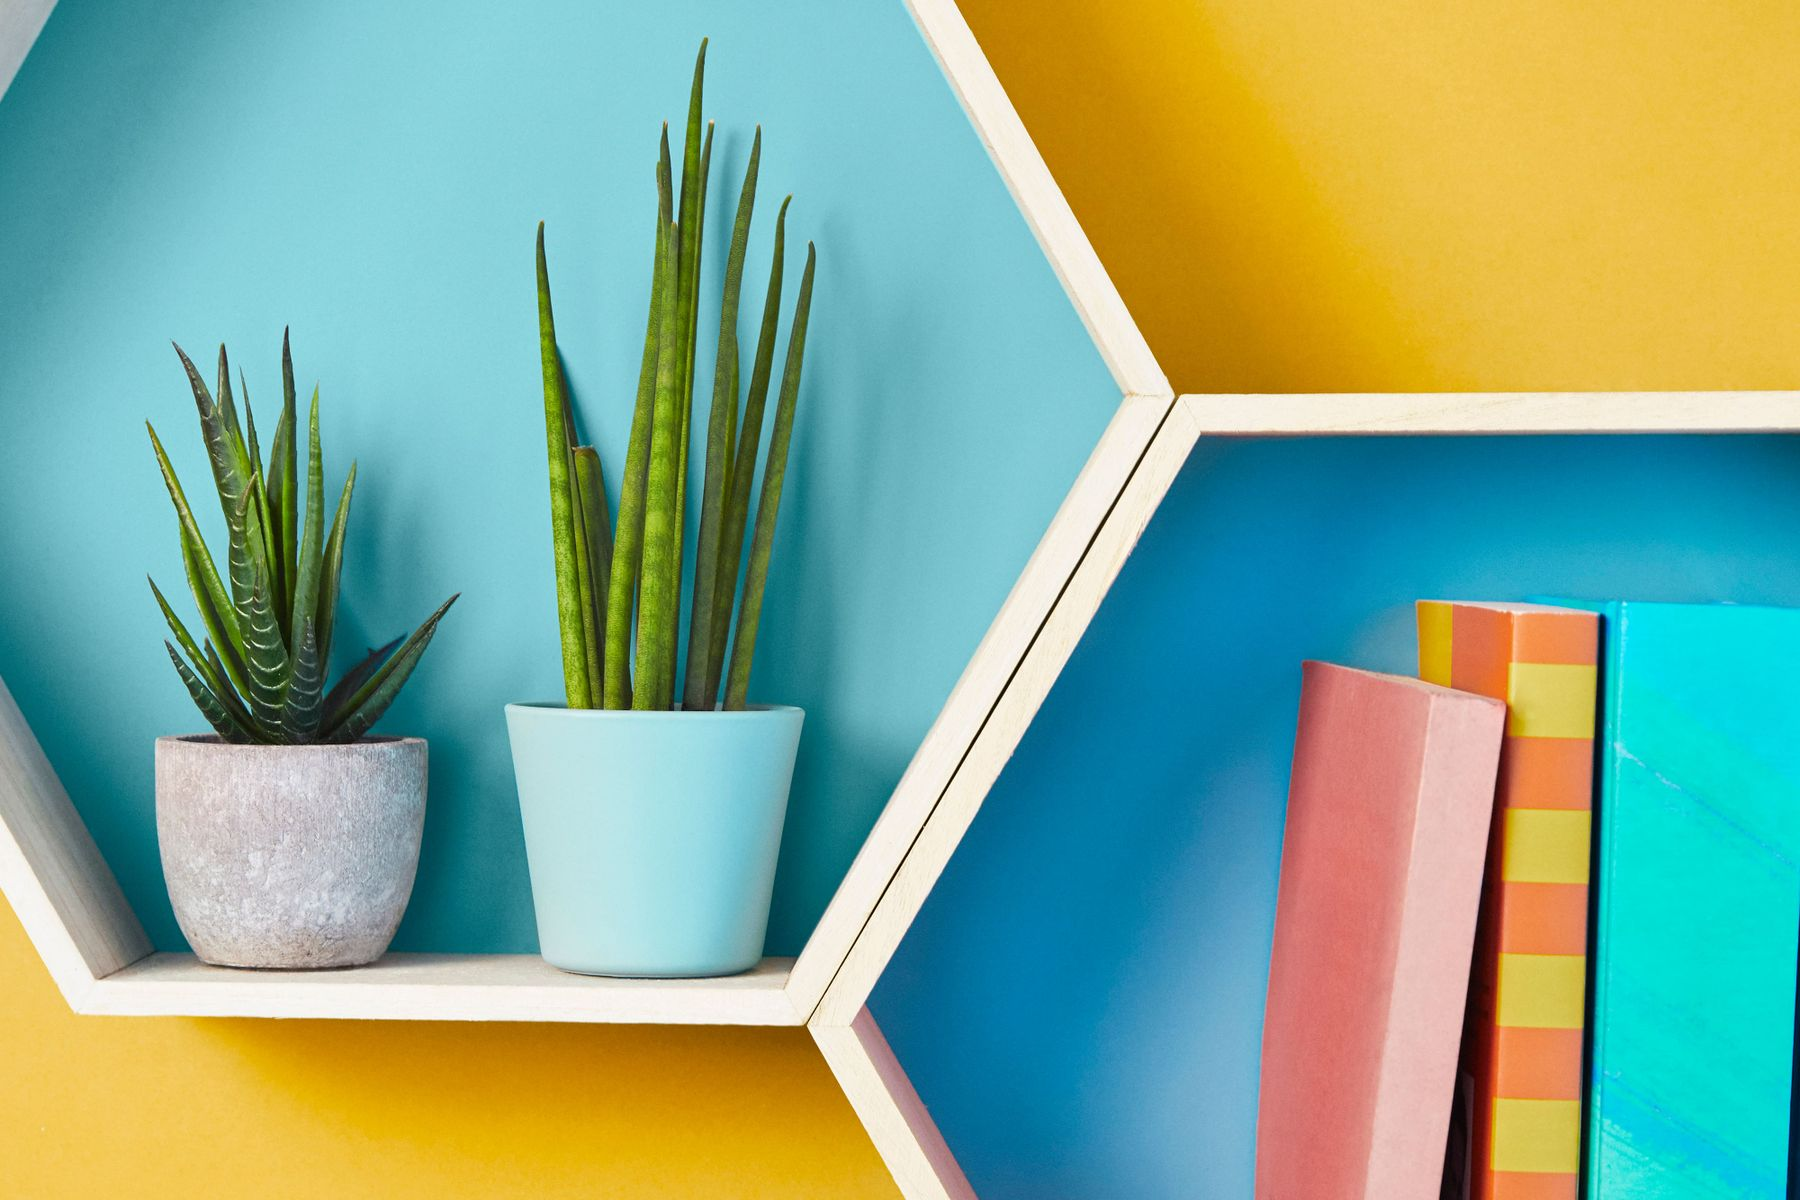 Blue octagonal shelving with books and flower plant against yellow backdrop